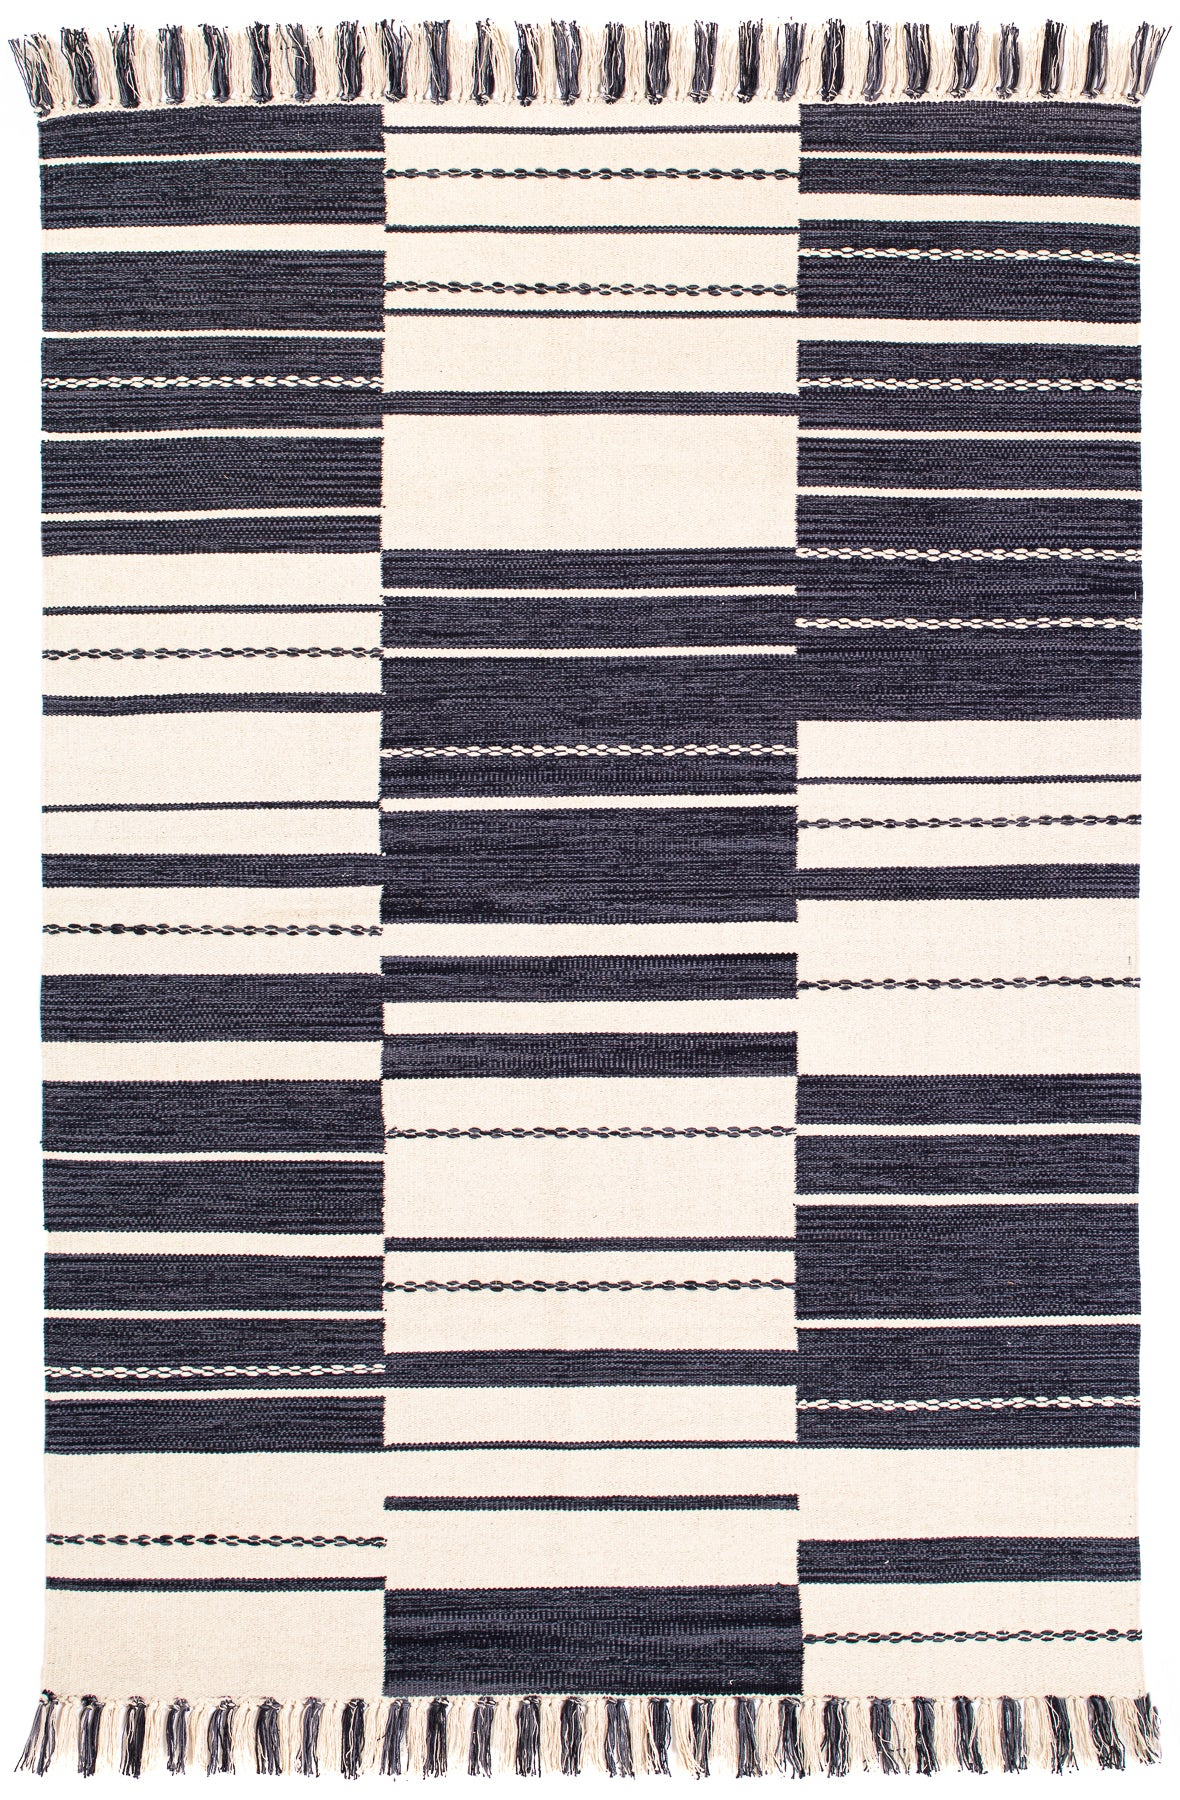 Metta - Black 2x3' Cotton Rug